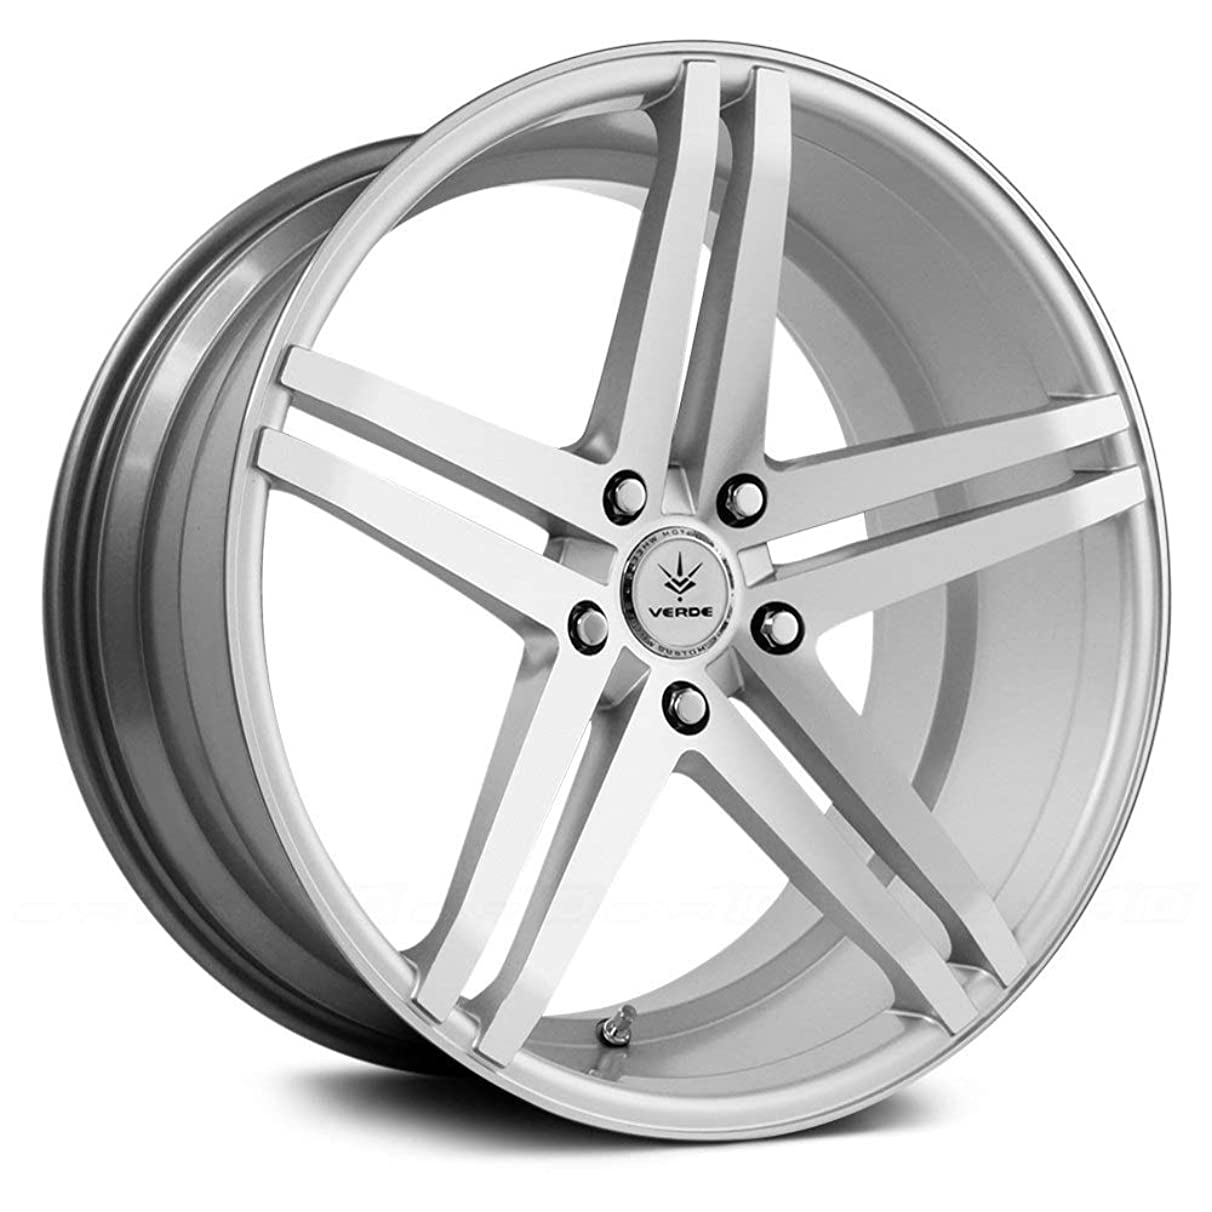 Verde Custom Wheels Parallax Matte Silver/Machined Wheel with Painted Finish (20 x 11. inches /5 x 112 mm, 48 mm Offset)